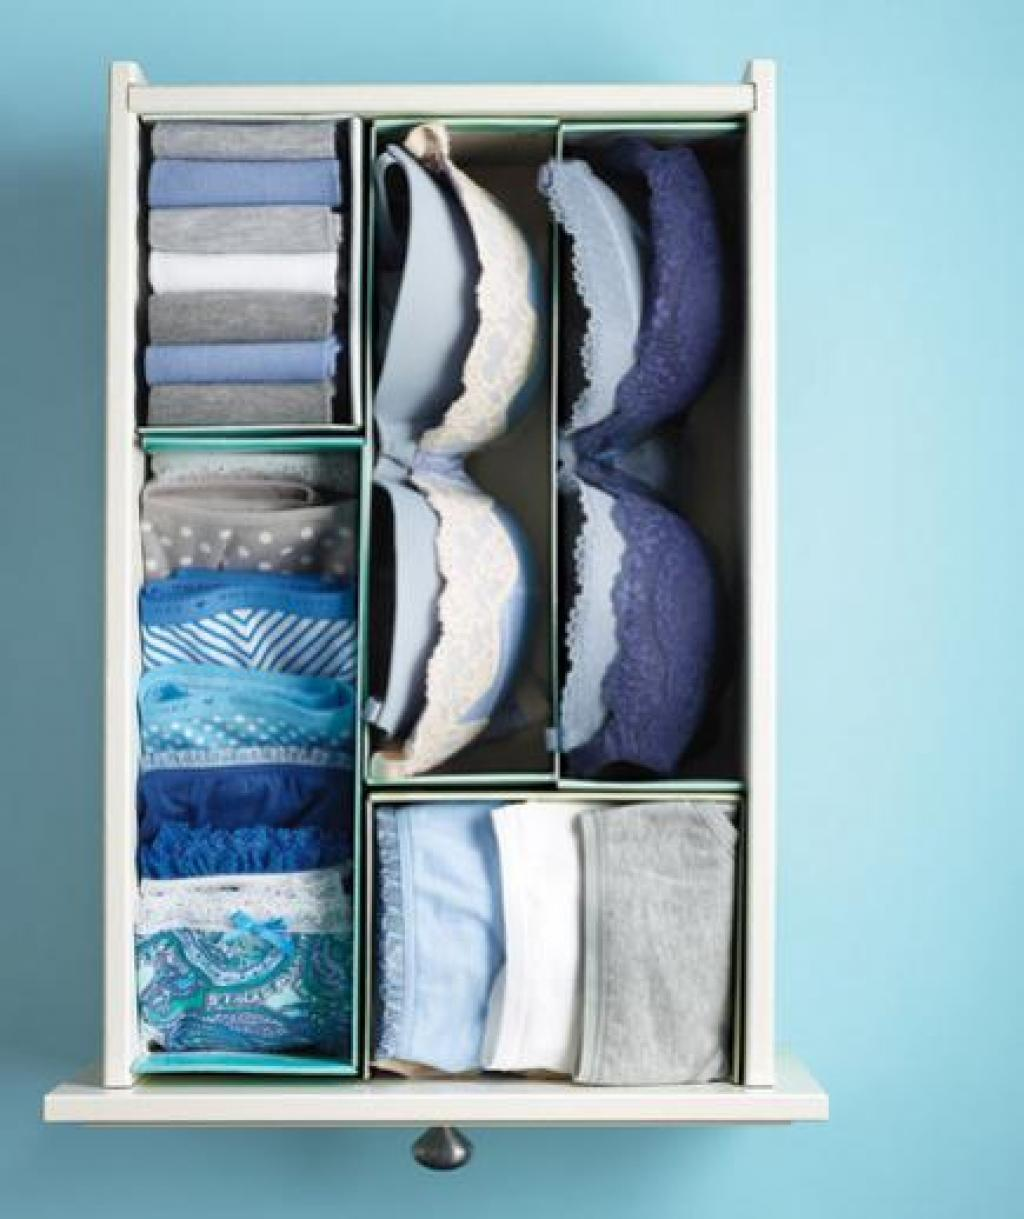 Discover All The Wonderful Things You Can Do With A Simple Shoebox Wiring House Cut Your Shoeboxes Into Pieces And Place Them In Drawer To Organize Bras Underwear As Pie But Very Effective